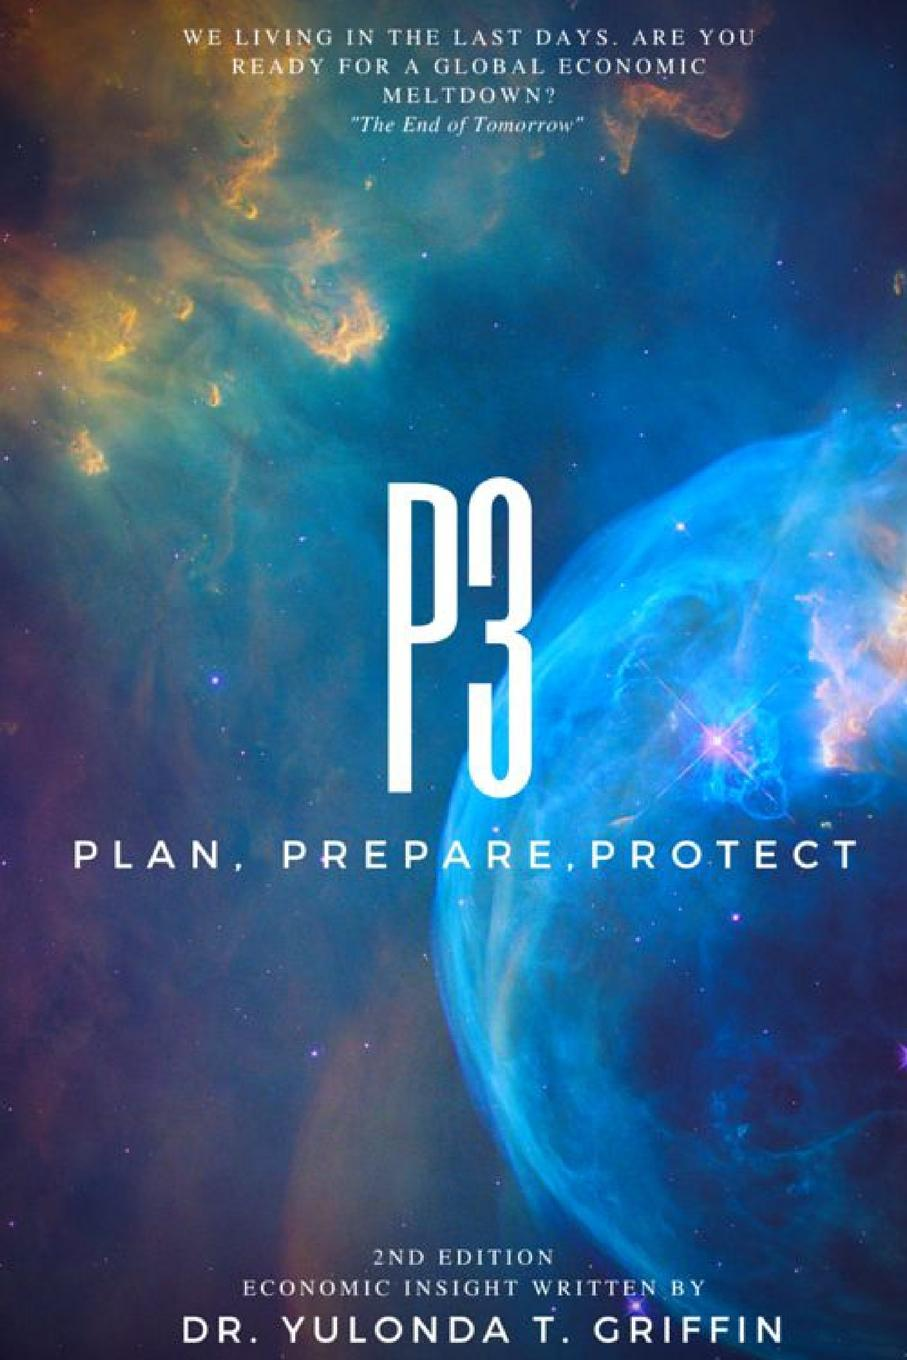 Dr. Yulonda T. Griffin p3 Plan, Prepare, Protect donald luskin the new gold standard rediscovering the power of gold to protect and grow wealth